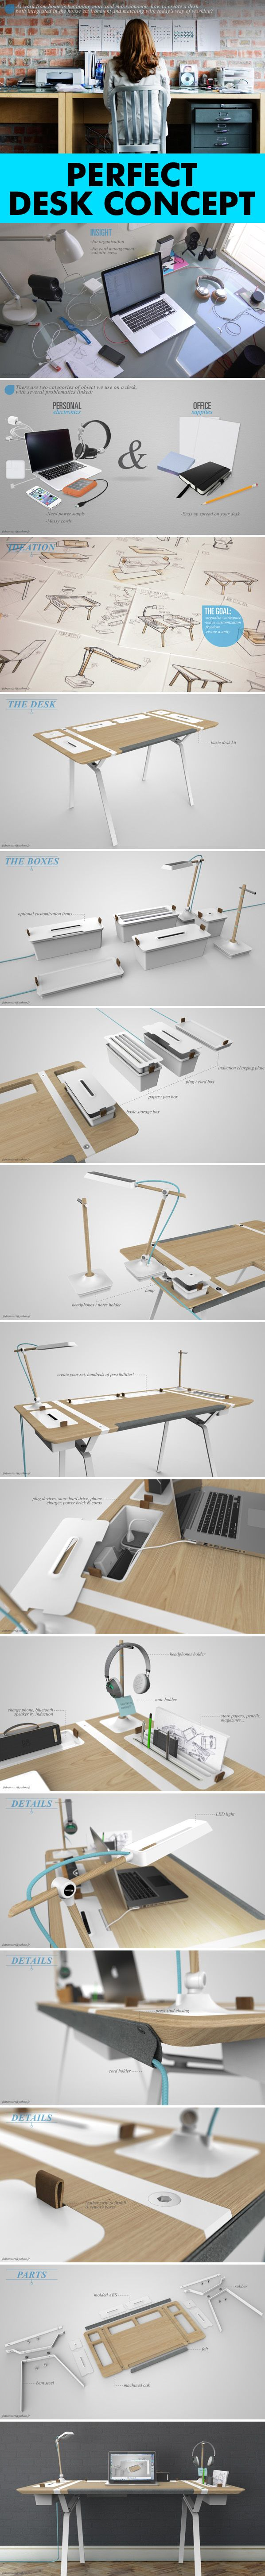 Very Cool Desk concept by Francois Dransart, via Behance *** #desk #behance